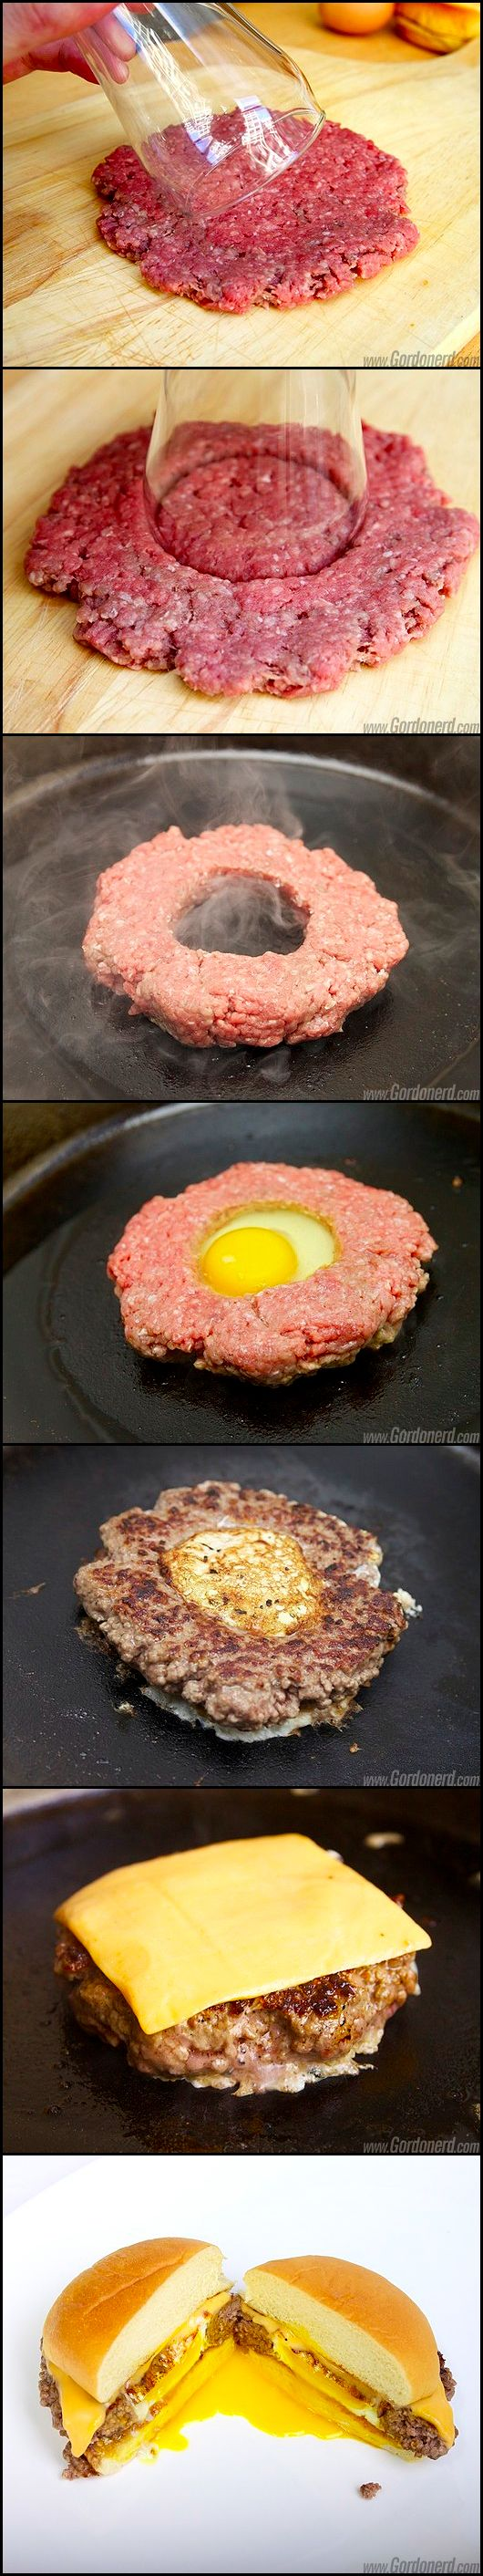 Use sausage and have the perfect breakfast sandwiches!! Yum